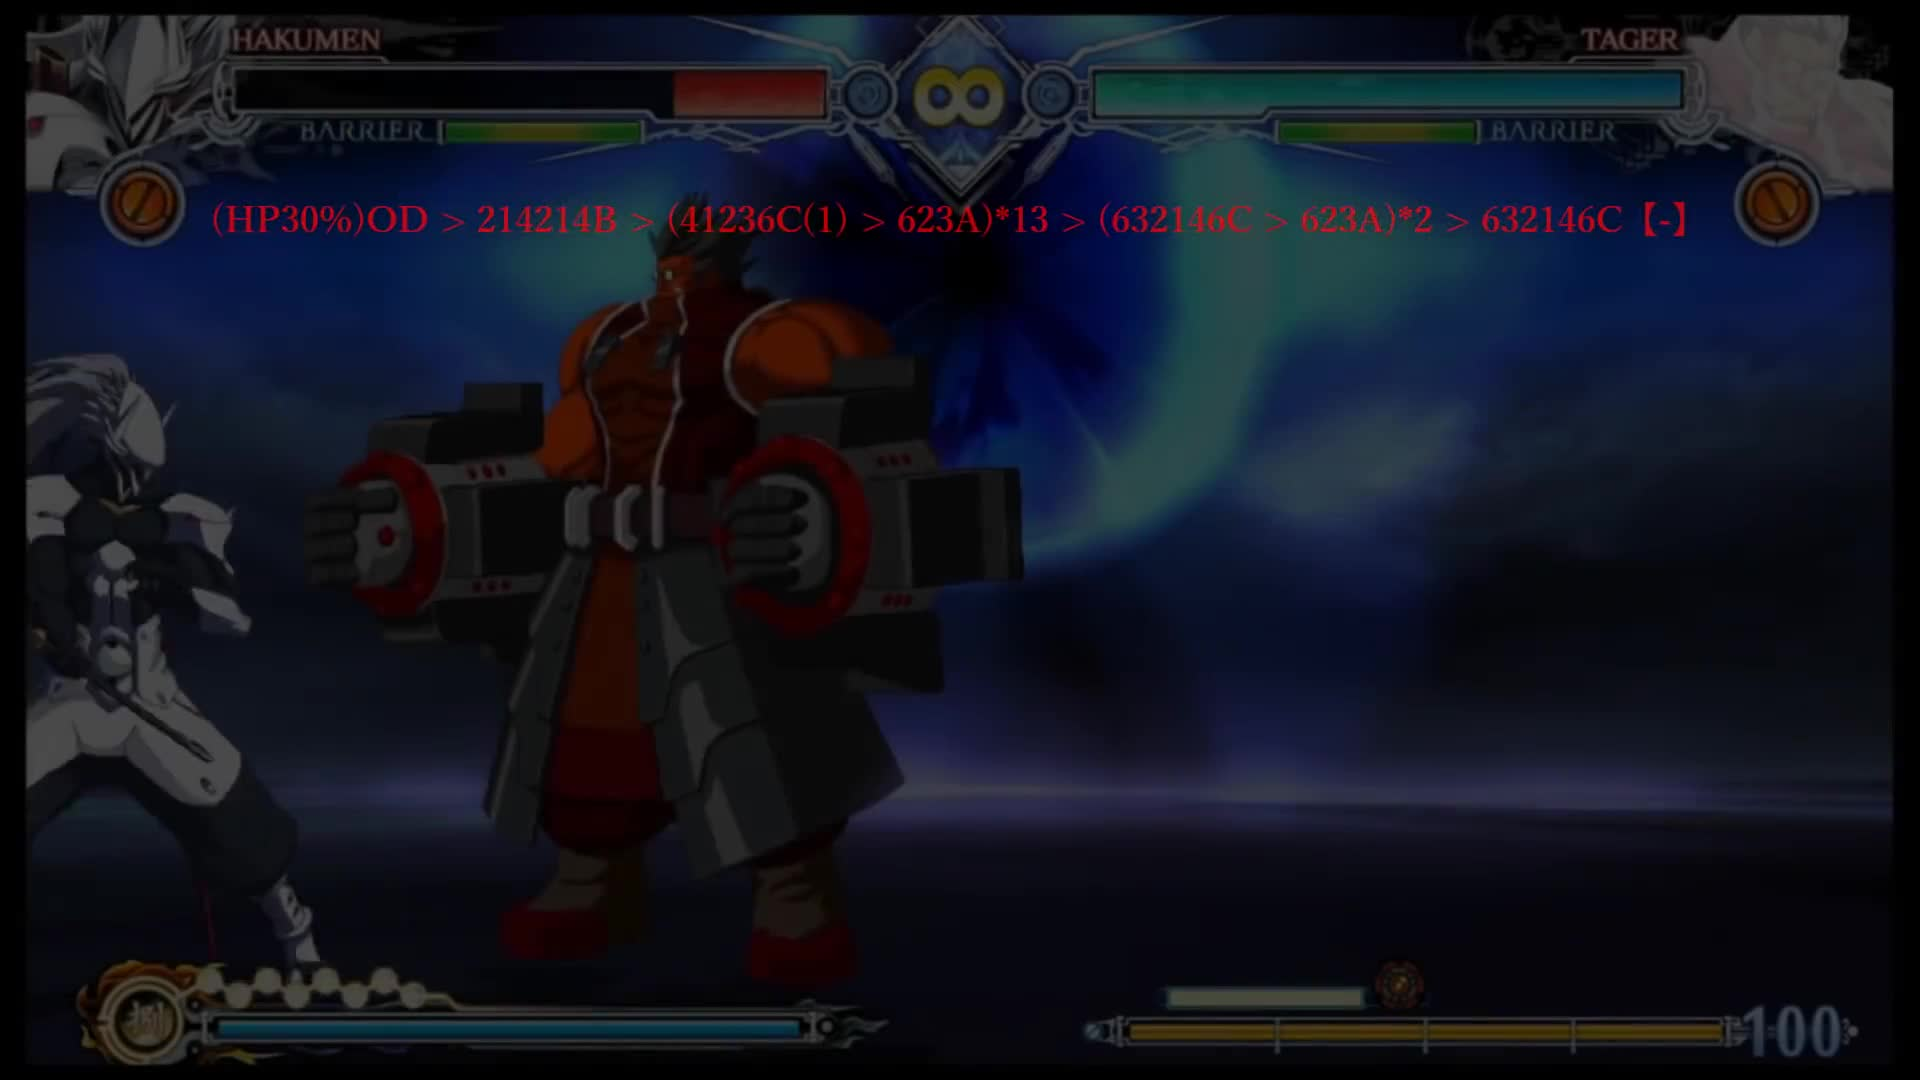 BBCF, BlazBlue, Distortion Drives, astral, centralfiction, combo, combos, distortion, drive, game, hakumen, movie, アストラルヒート, コンボ, ディストーションドライブ, ハクメン, ブレイブルー, 必殺技, 必殺技集, 格ゲー, BBCF2 HAKUMEN BASIC COMBOS【BLAZBLUE CENTRALFICTION ハクメン 基礎コンボ】 GIFs